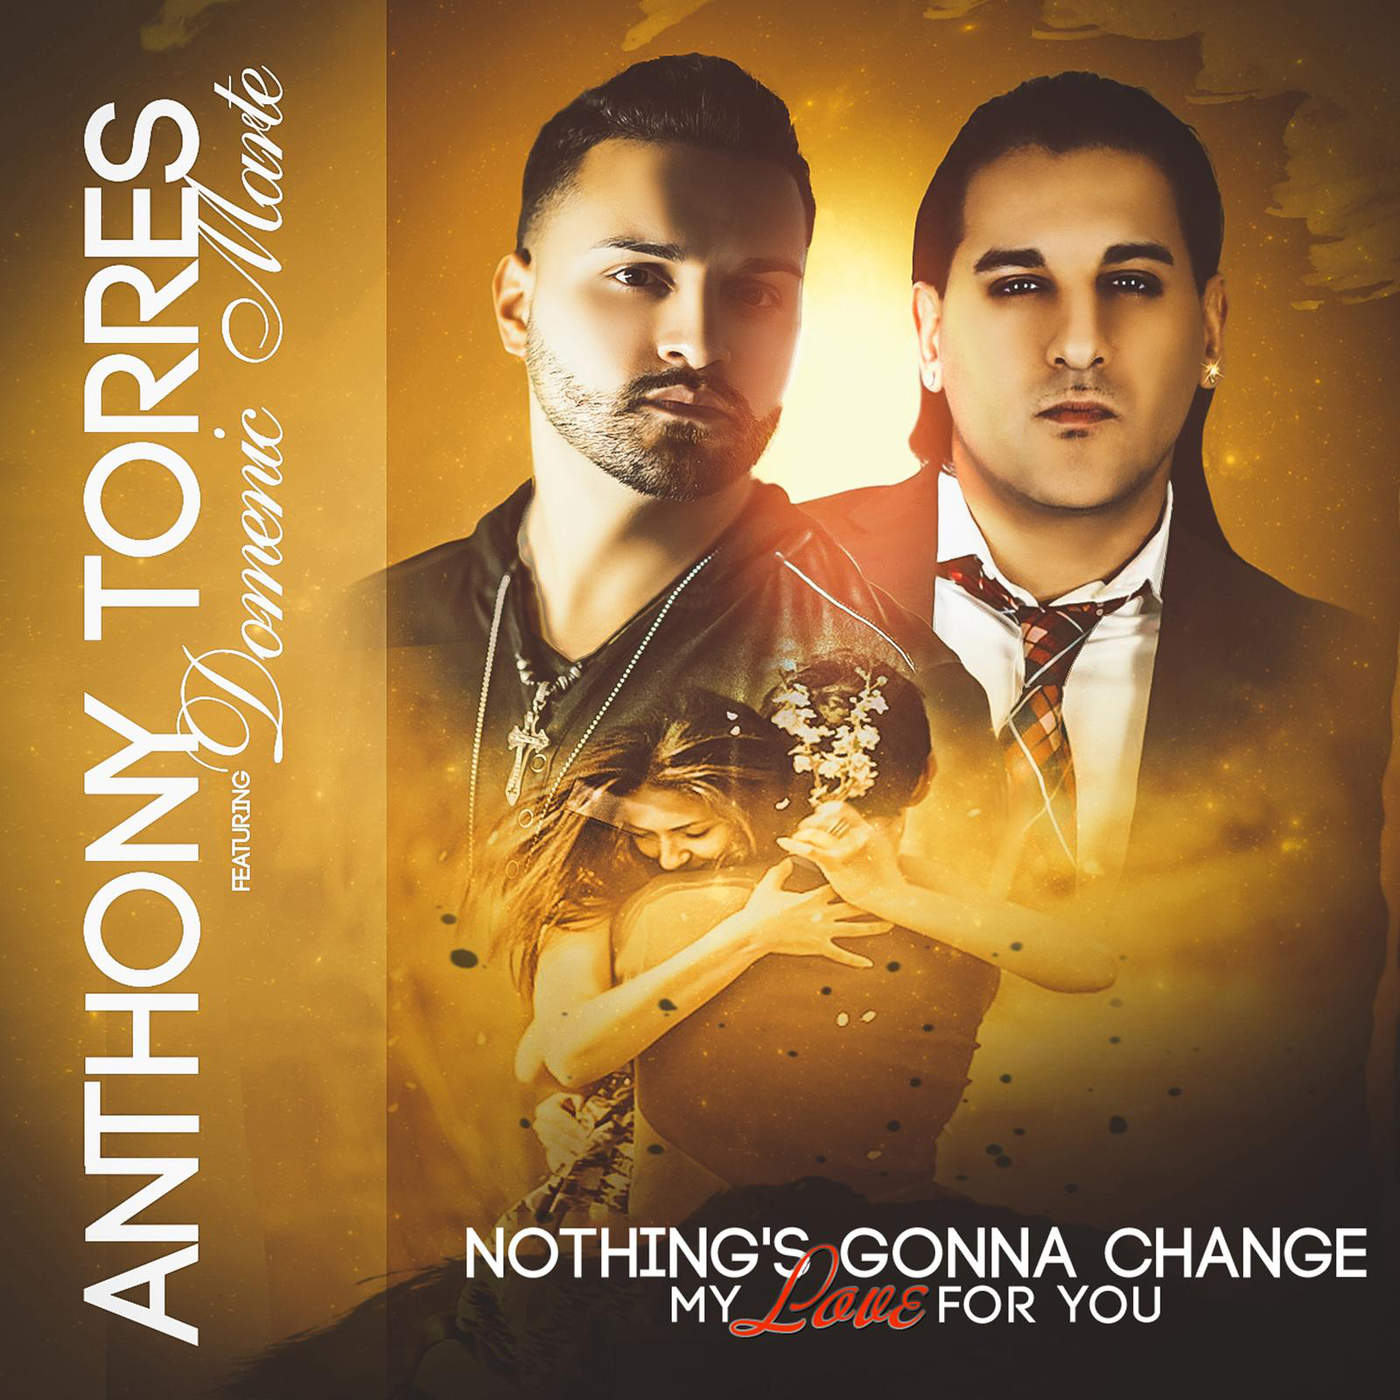 NOTHING'S GONNA CHANGE MY LOVE FOR YOU - NOTHING'S GONNA CHANGE MY LOVE FOR YOU – SINGLE